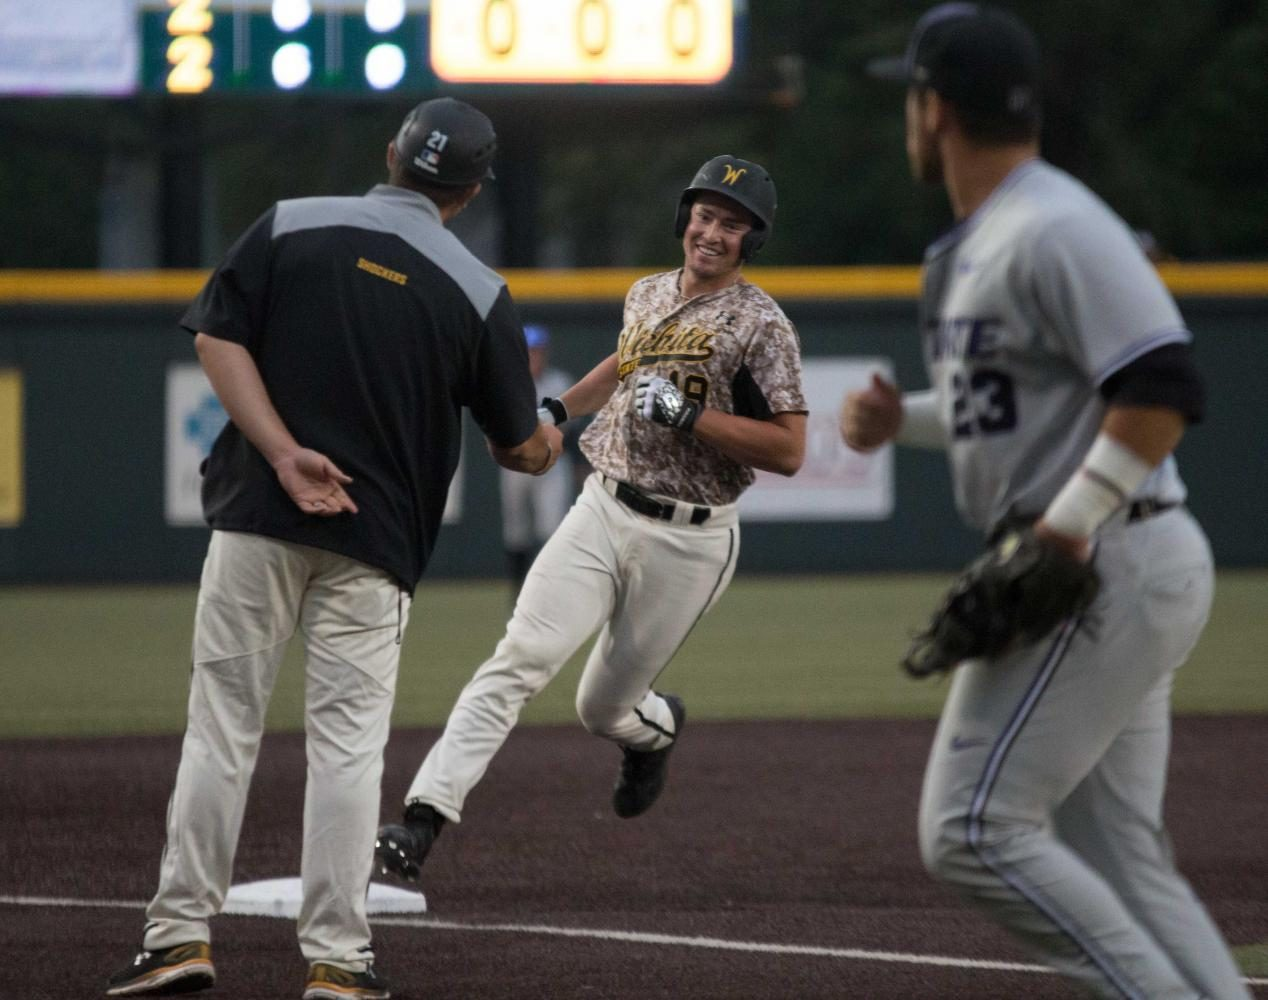 Wichita+State+sophomore+Luke+Ritter+smiles+at+assistant+coach+Brian+Walker+after+hitting+a+walk-off+home+run+to+beat+K-State+3-2+Tuesday+evening+at+Eck+Stadium.